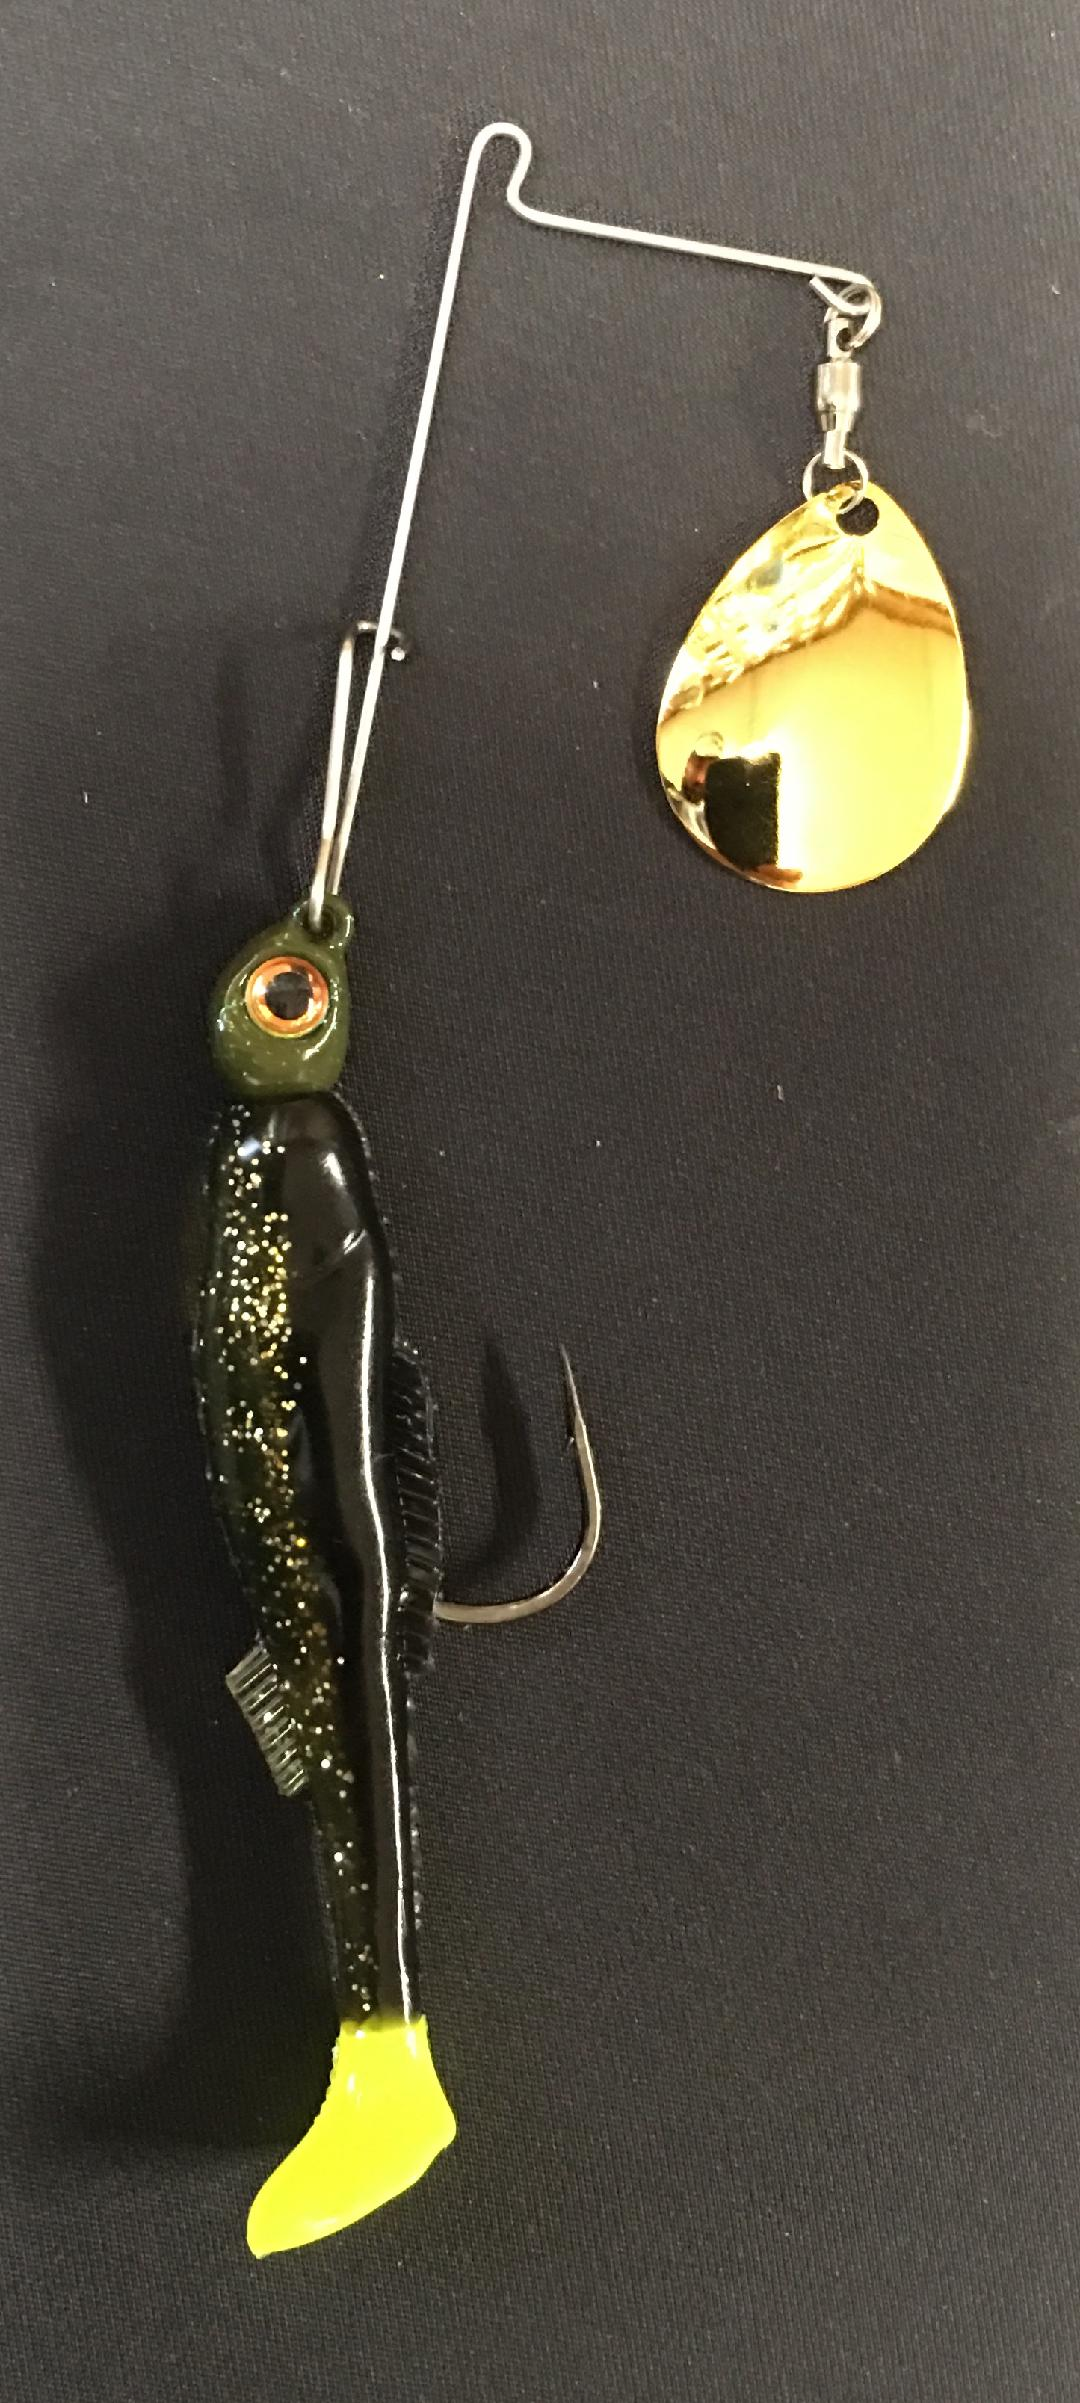 1/4 oz Rootbeer chartreuse tail - Kajun Boss Outdoors